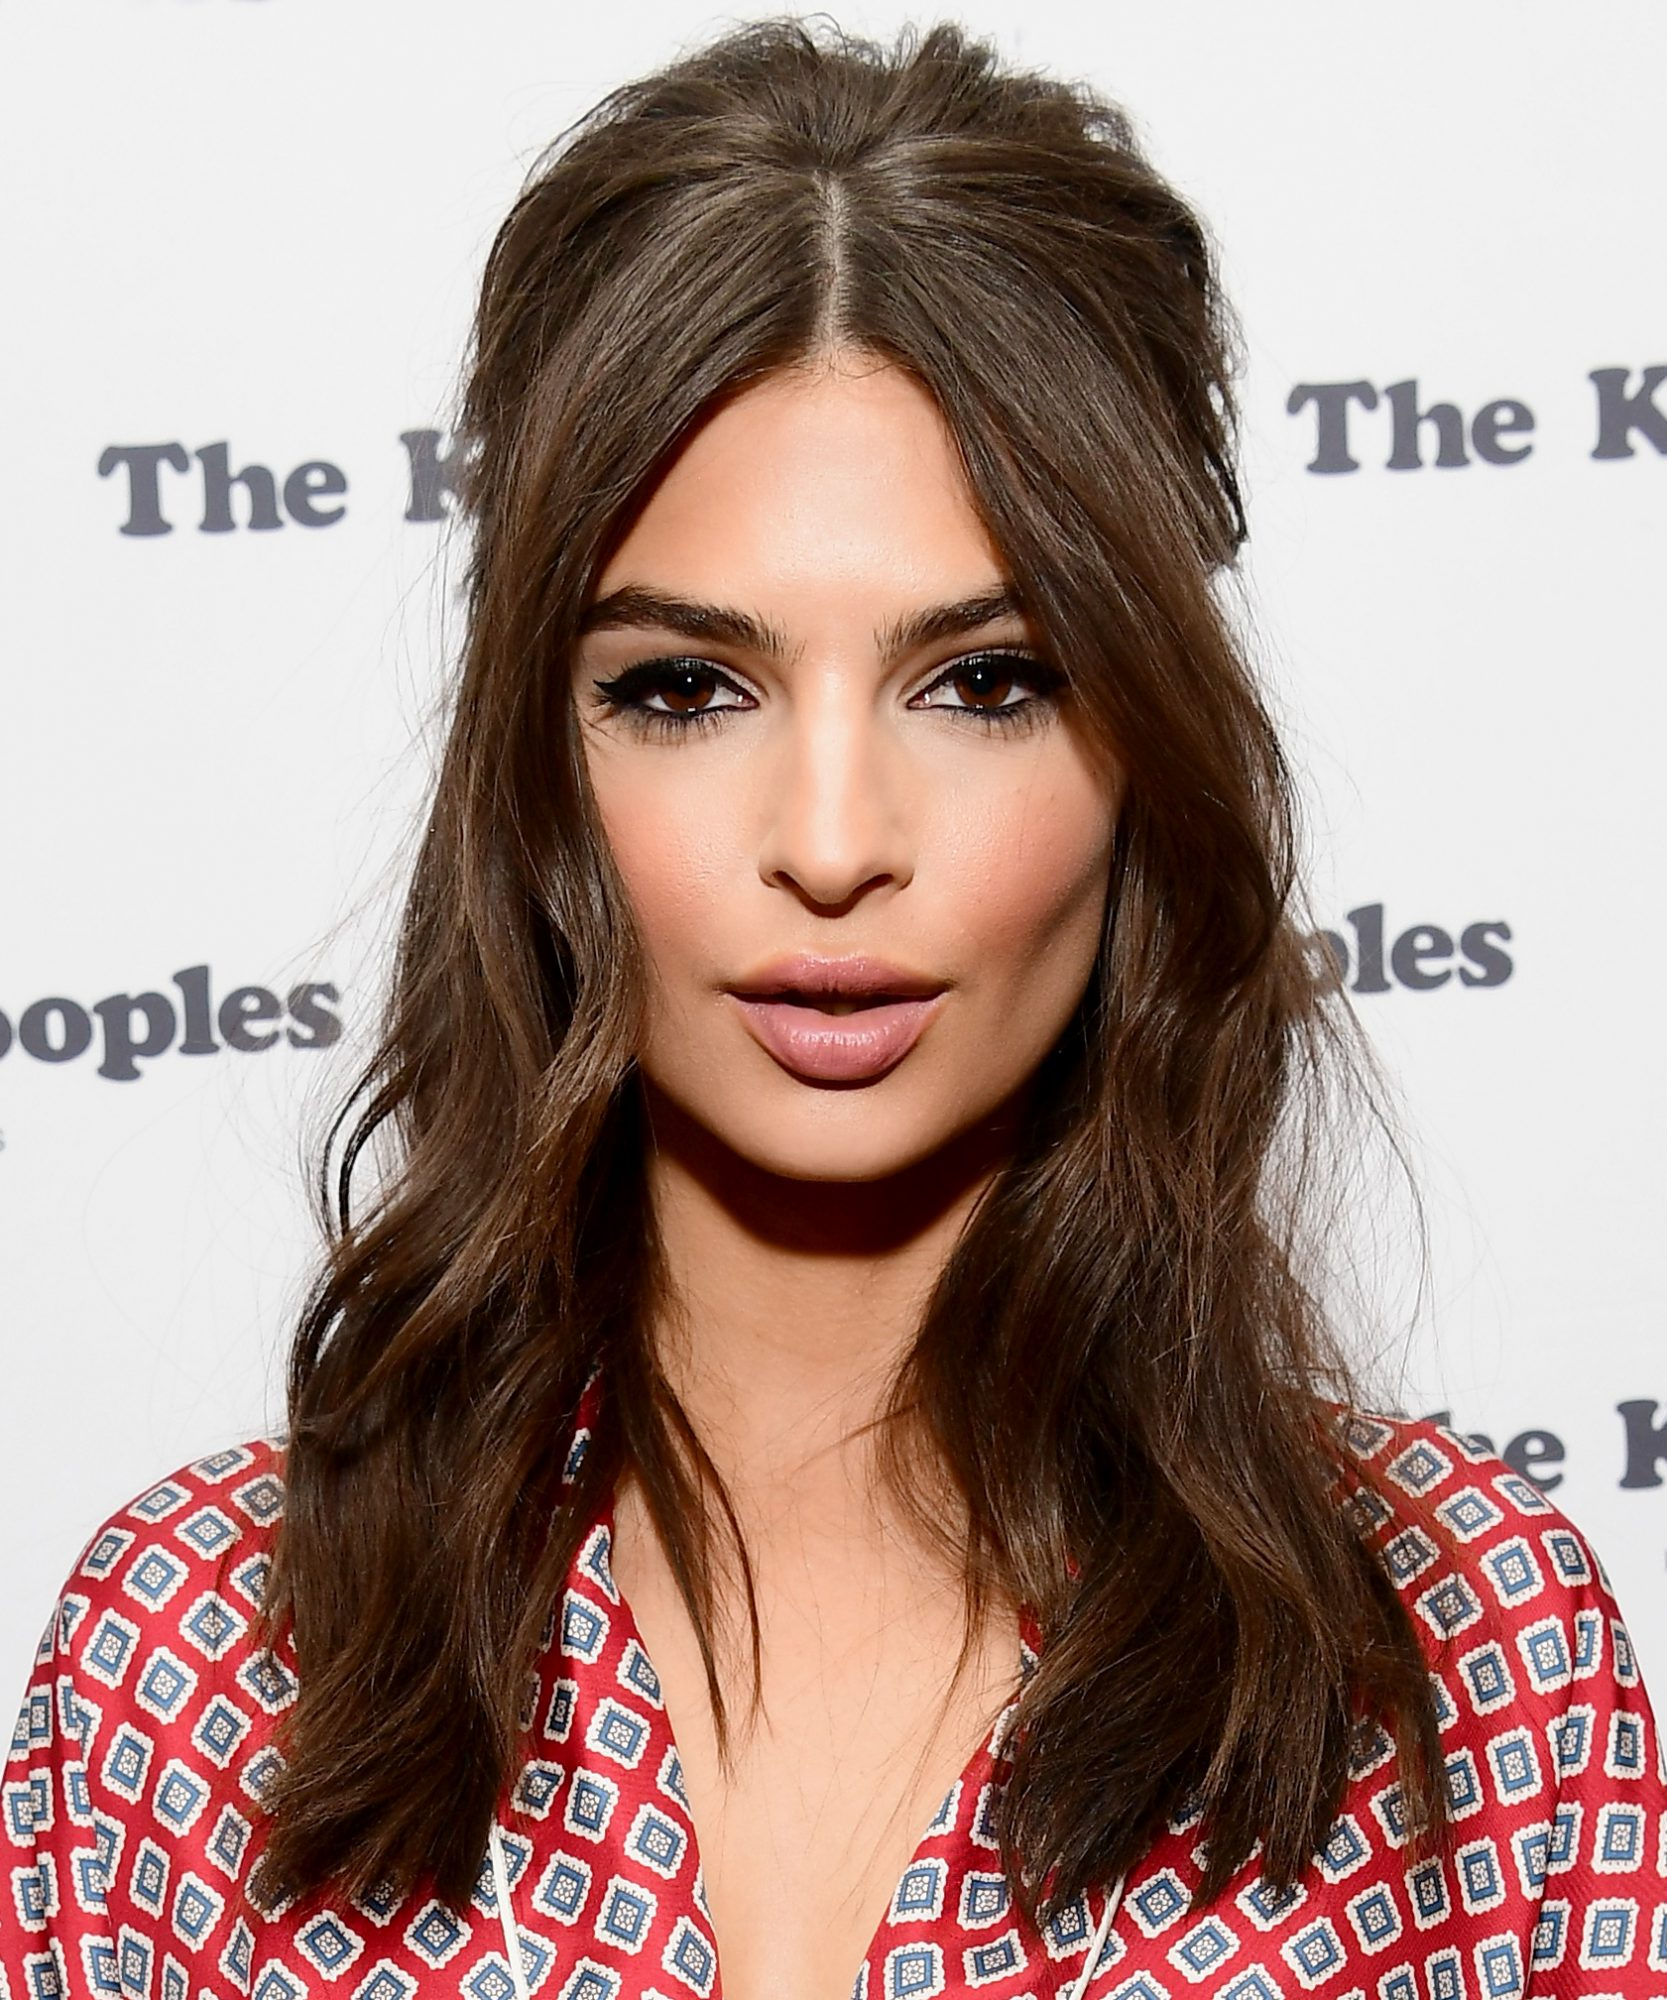 <p>Emily Ratajkowski's Half-Up Half-Down Bouffant </p>